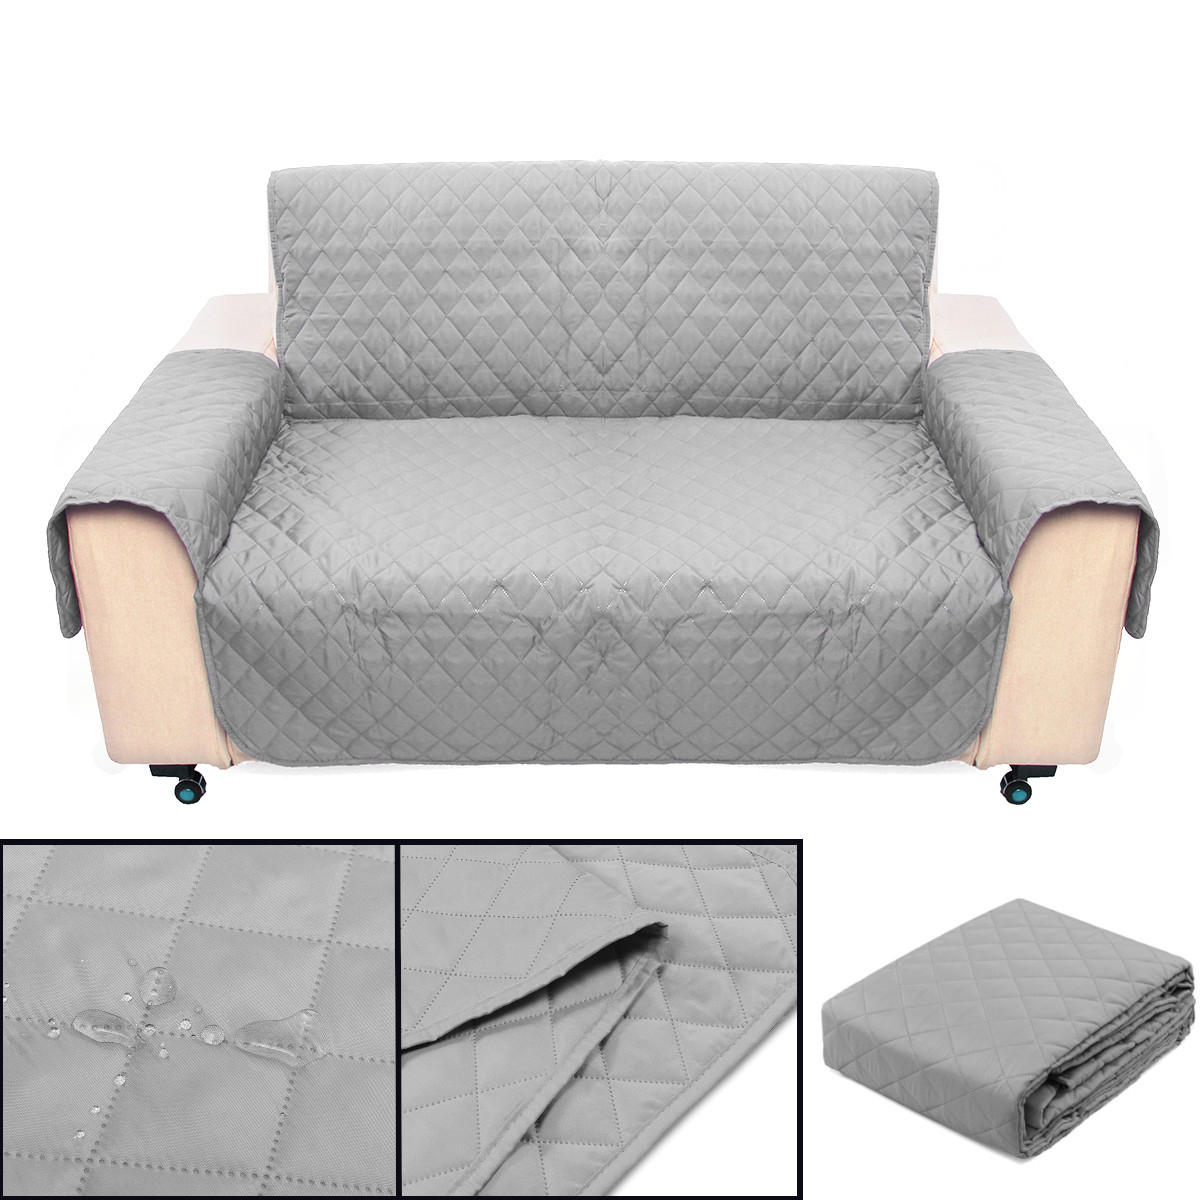 Sofa Couch Protector Cover Removable W